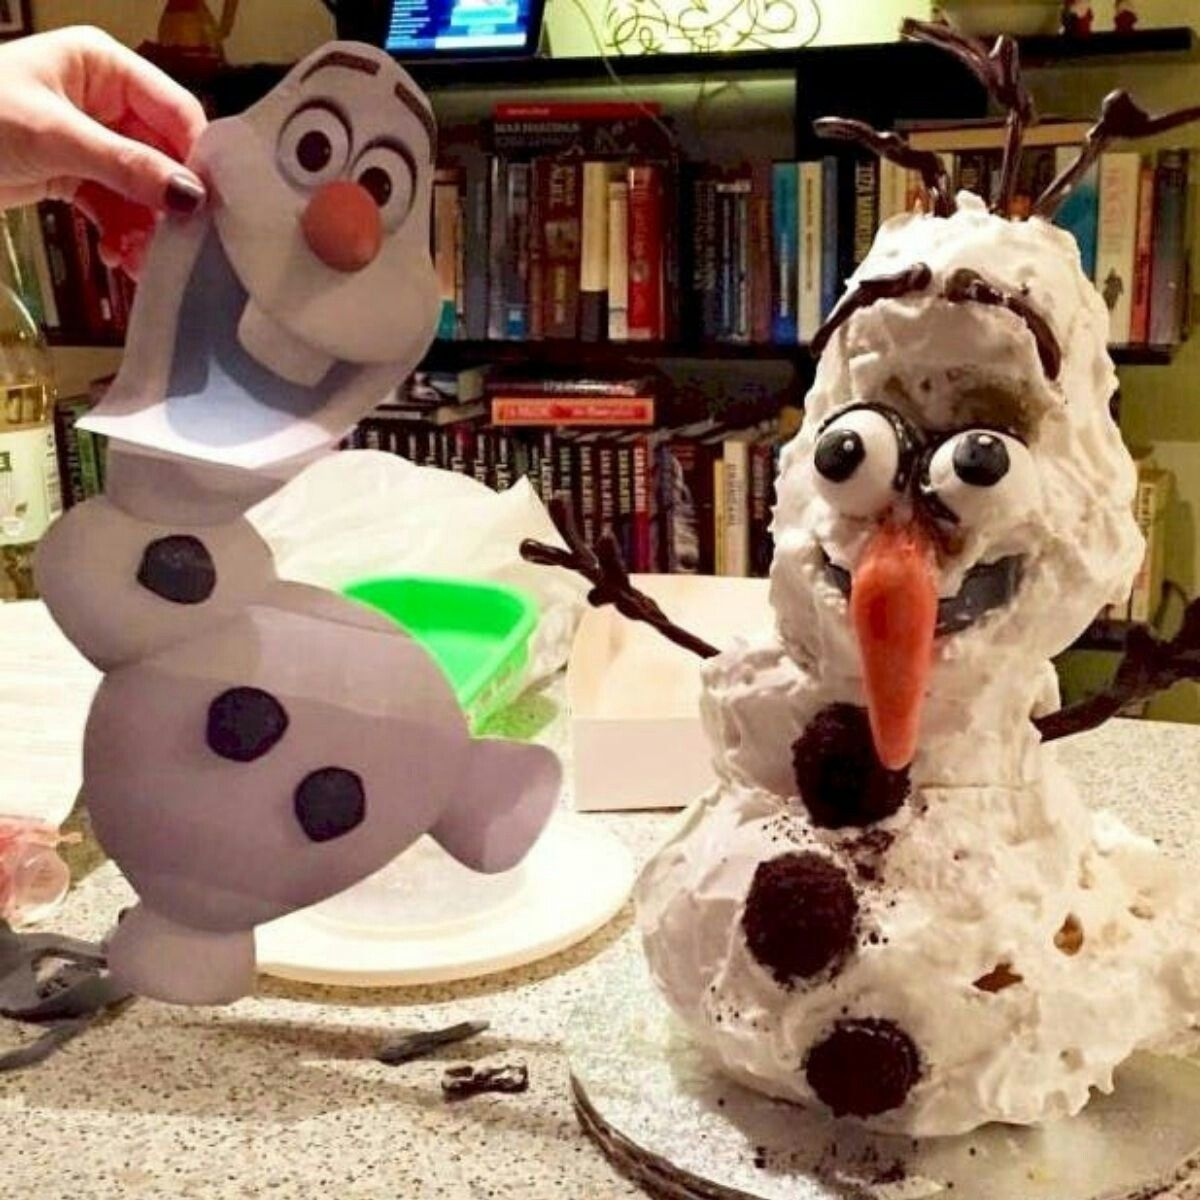 Pin by Jessica Balas on Nailed it! in 2020 Cake fails